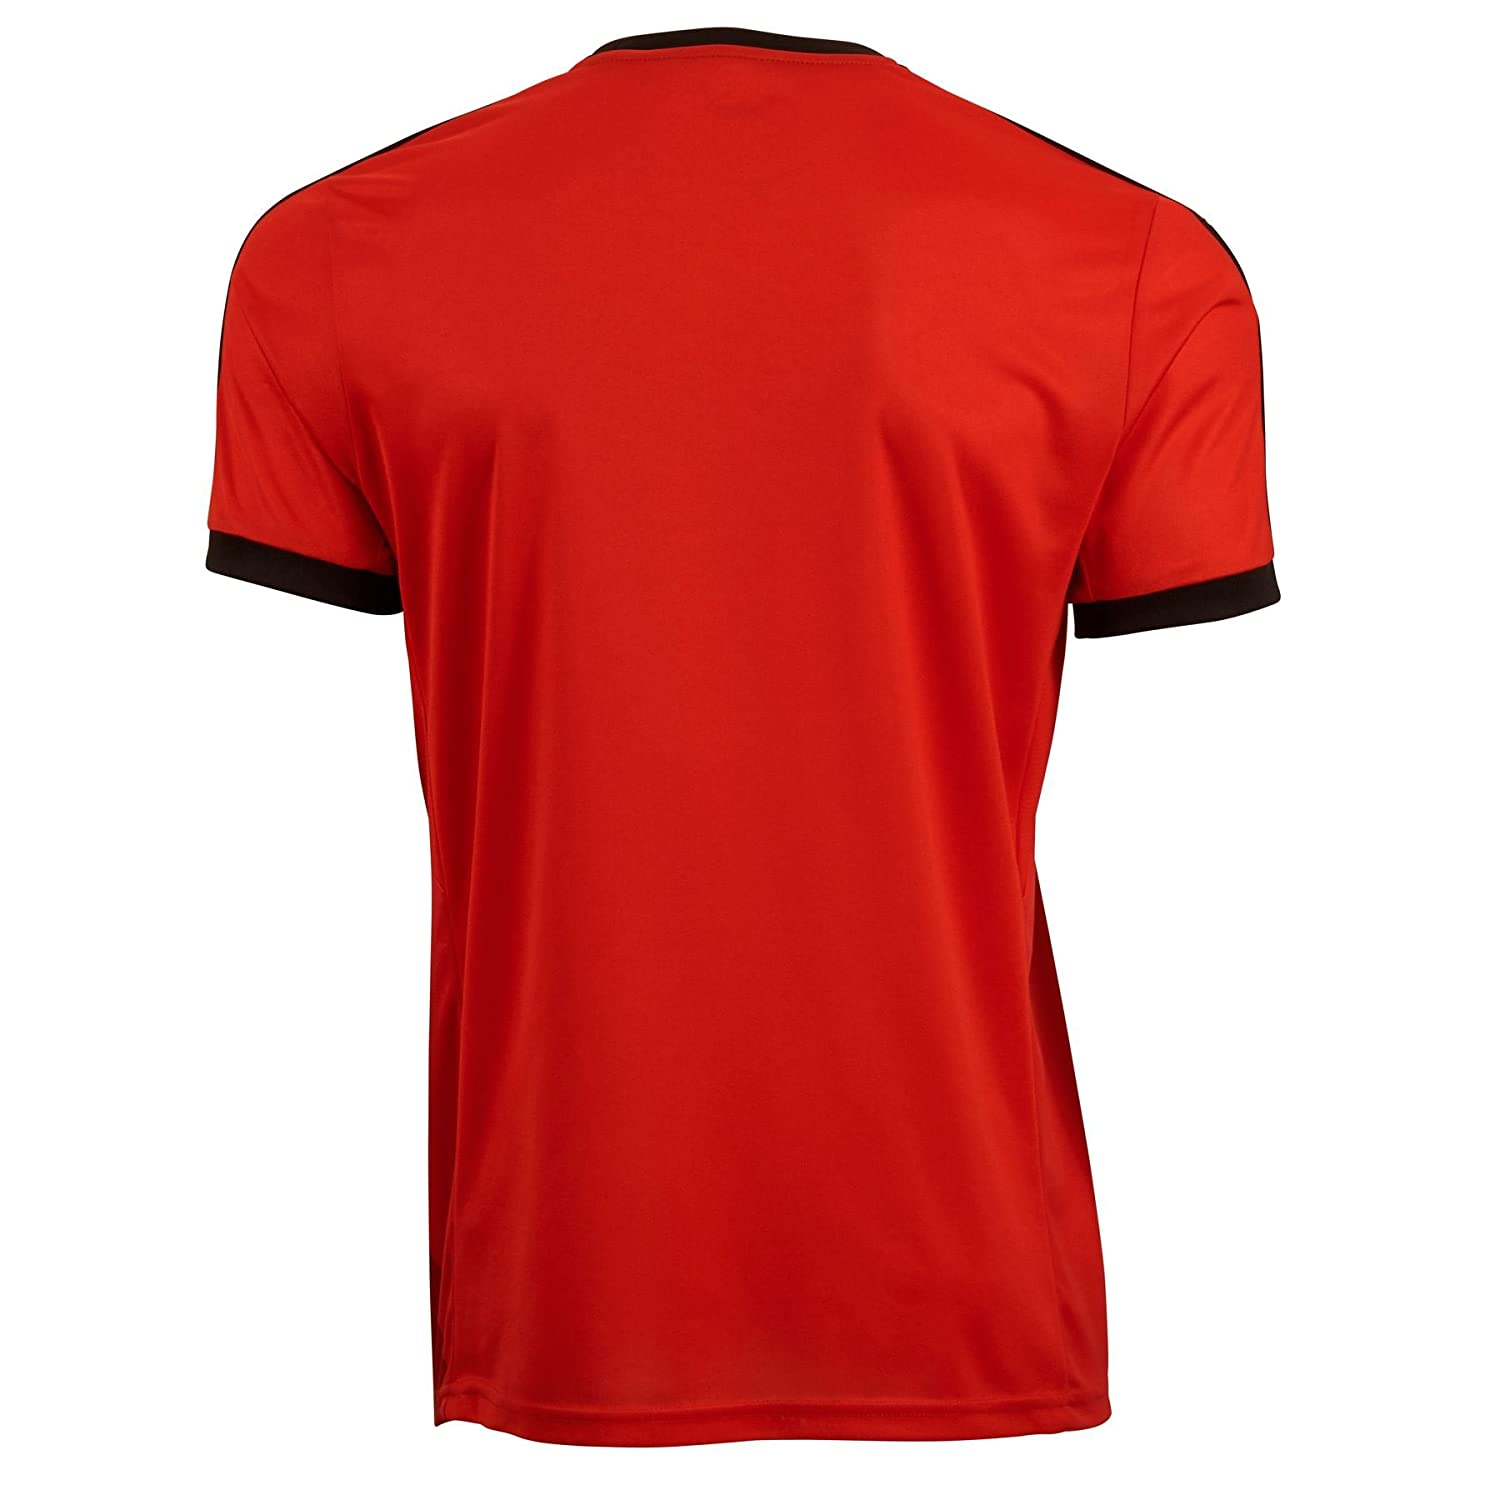 9a5ae2f101a Puma Mens Glasgow Rangers Football Club Away Shirt Jersey T-Shirt Top 15 16  Red  Amazon.co.uk  Sports   Outdoors